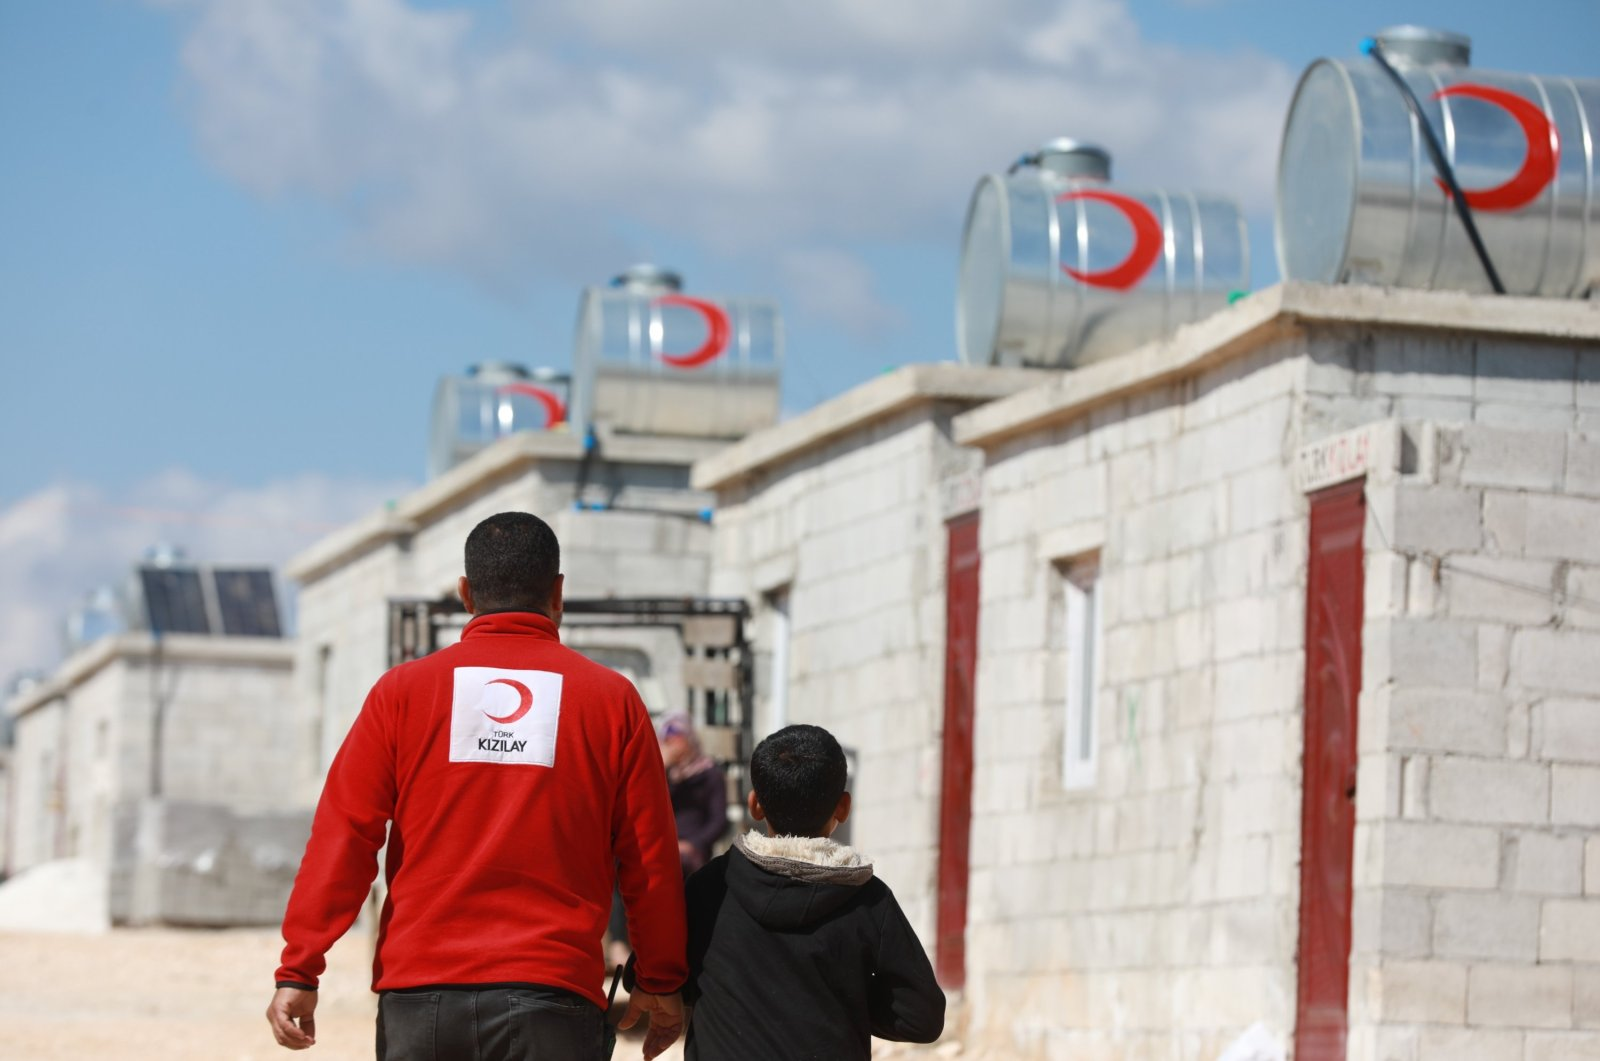 A Turkish Red Crescent (Kızılay) volunteer walks with a child near houses built by Kızılay for displaced Syrians in Sarmada, Idlib province, Syria, April 3, 2021. (AA Photo)